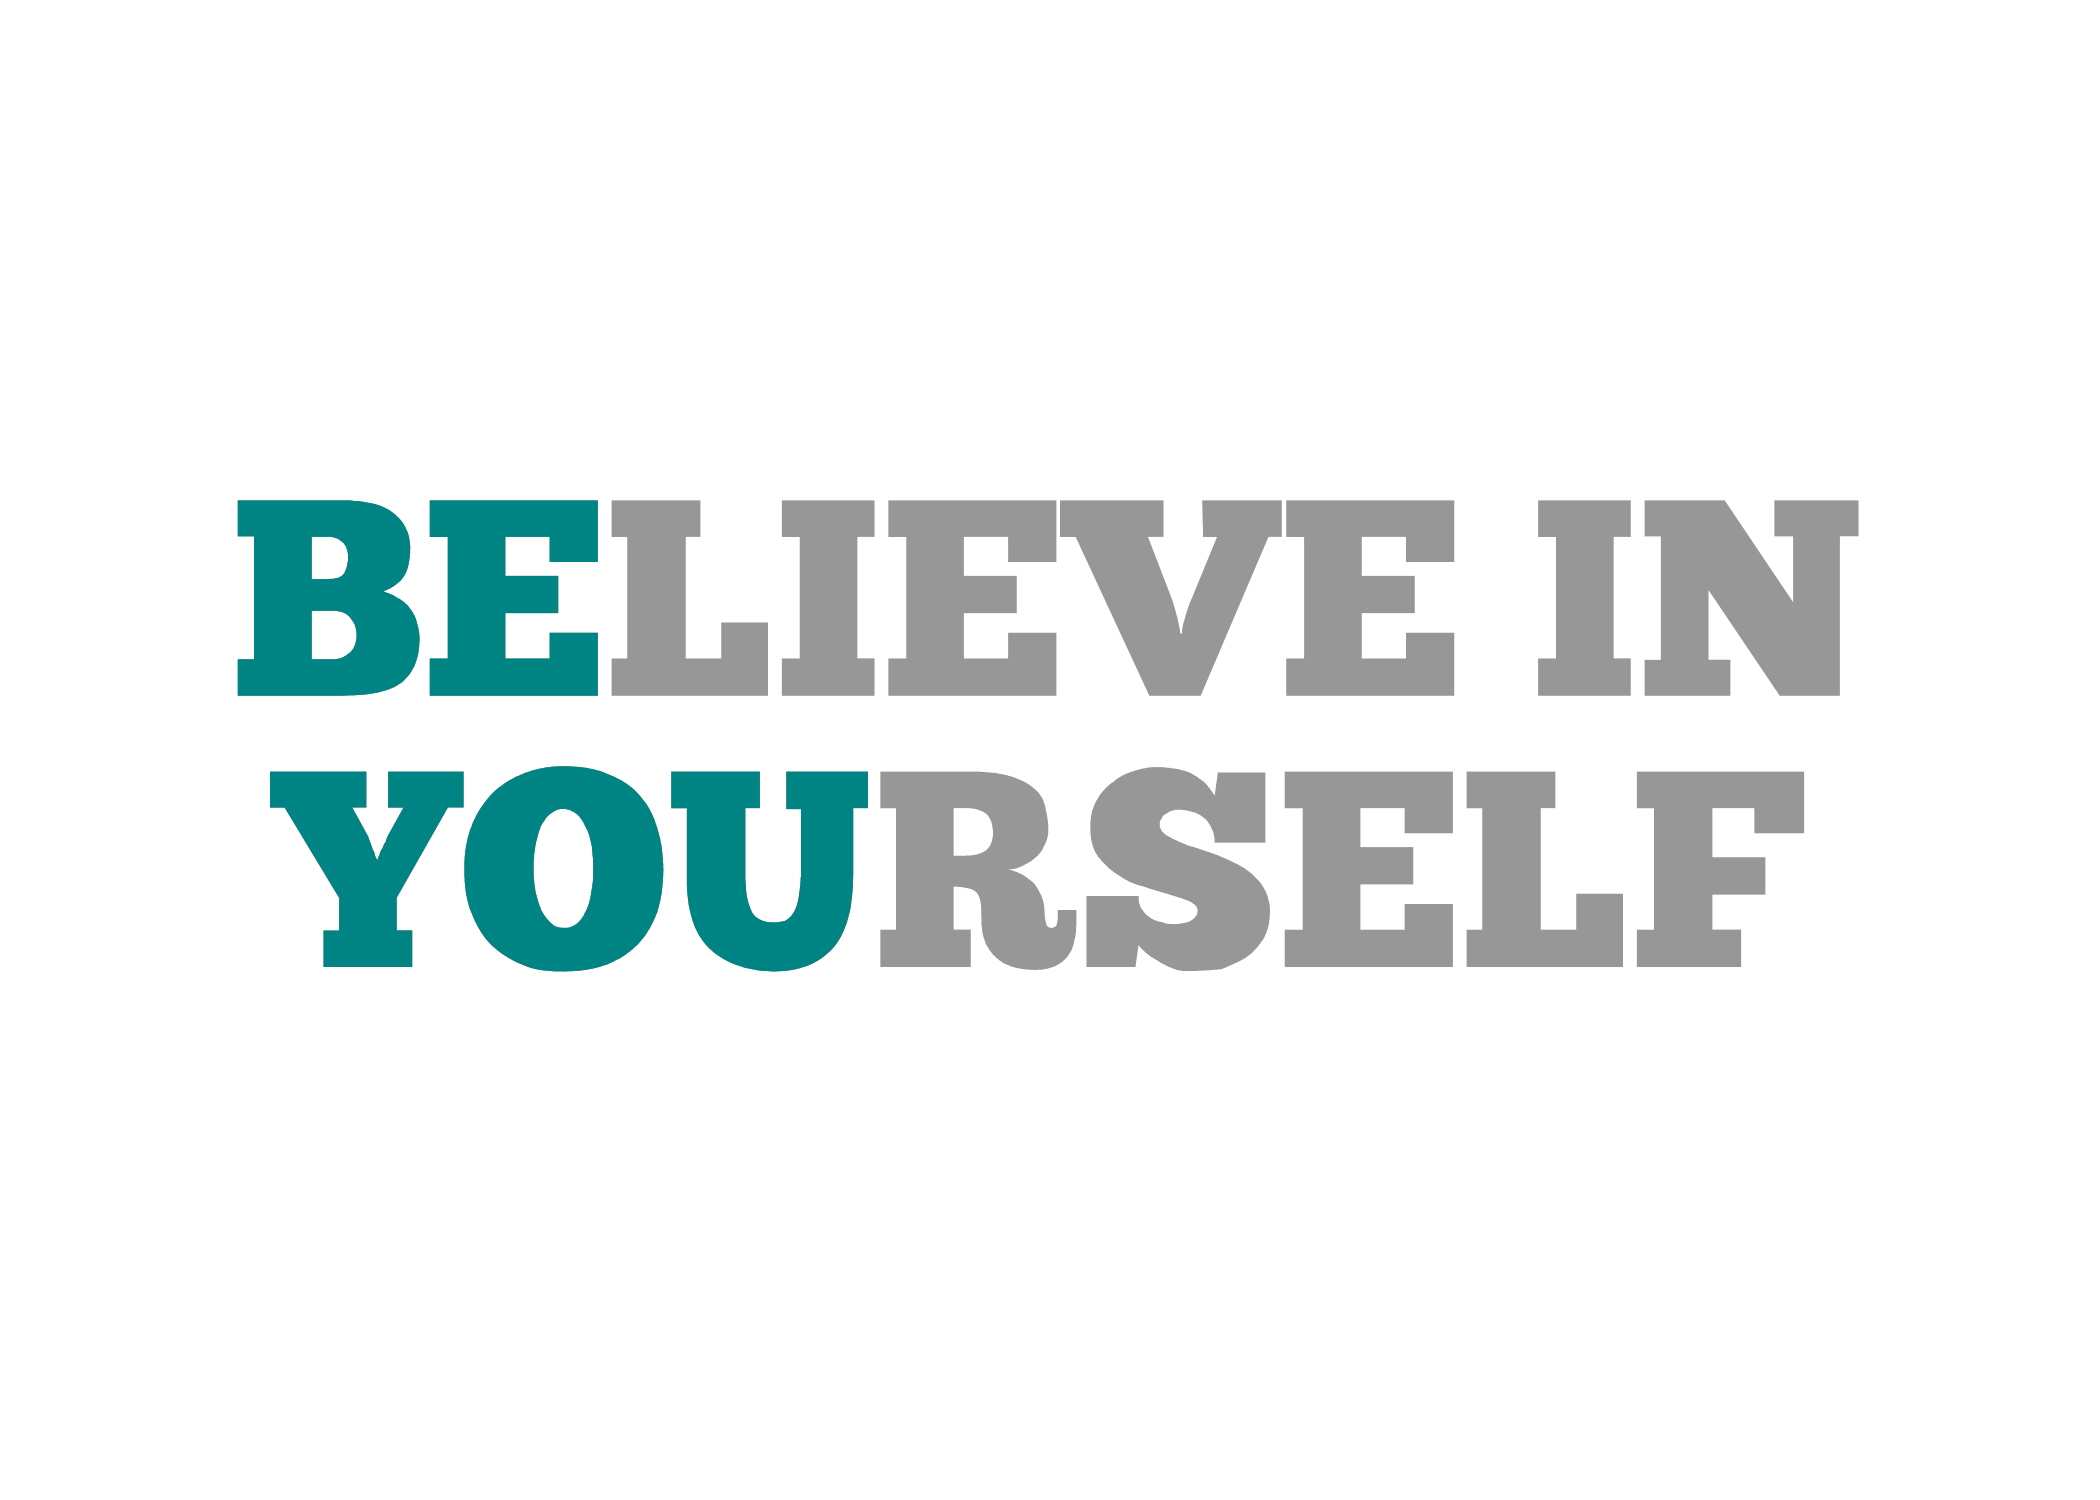 Just Because 34   Believe In Yourself   Teal Blue   Gray   Sprik